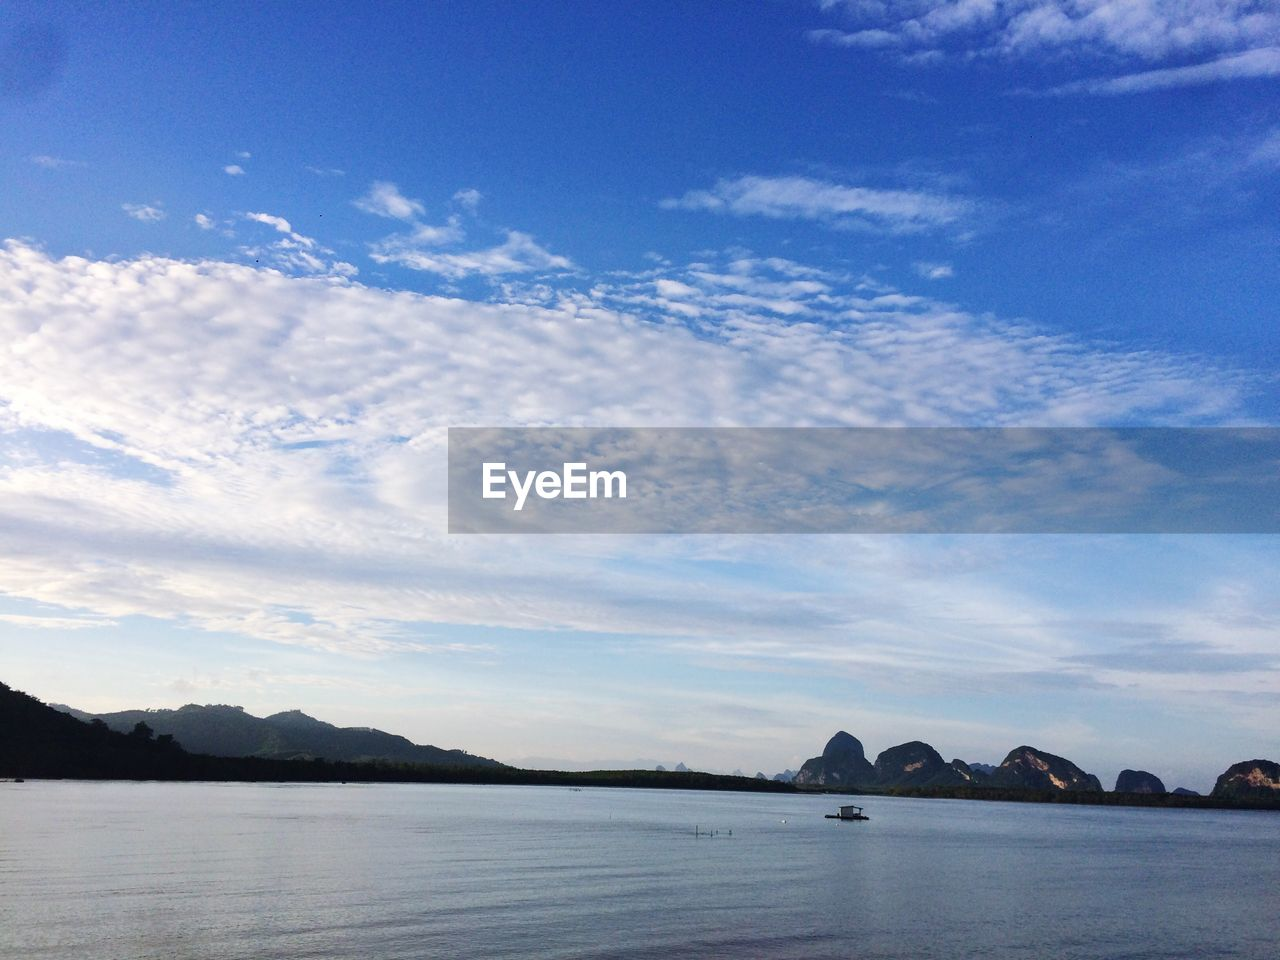 sky, cloud - sky, water, scenics - nature, tranquility, beauty in nature, tranquil scene, sea, nature, waterfront, mountain, no people, blue, day, outdoors, architecture, idyllic, transportation, remote